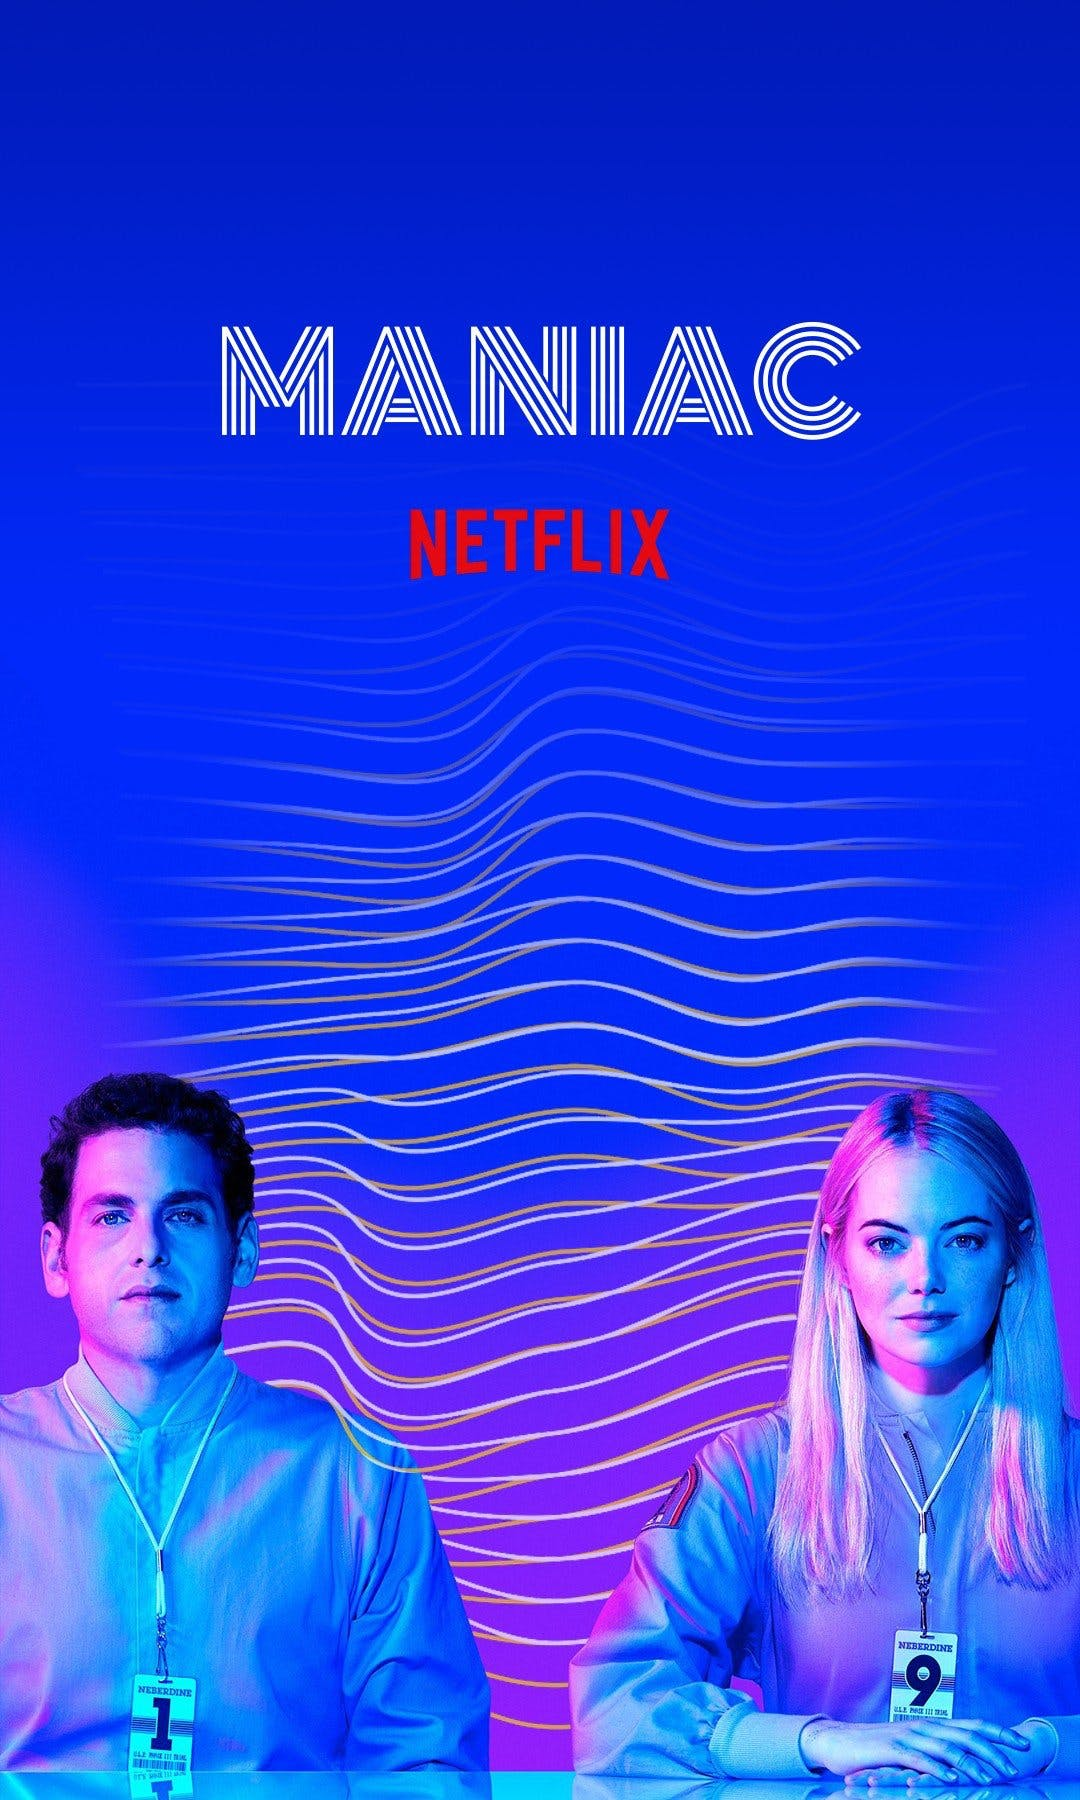 Cover image of a Tappable web story highlighting the Maniac Netflix series